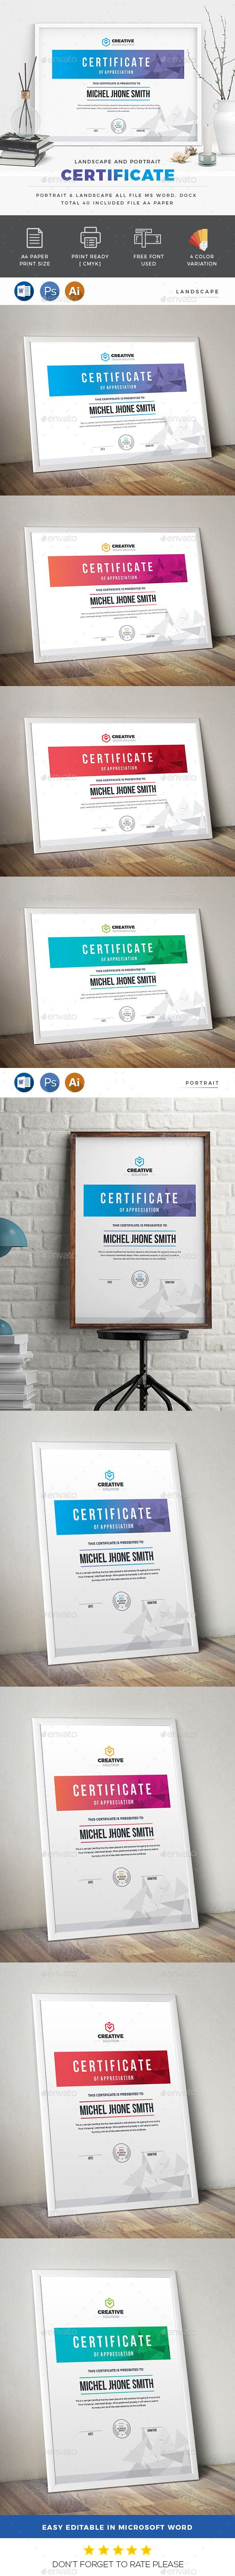 #Certificate - #Certificates Stationery Download here: https://graphicriver.net/item/certificate/20340518?ref=alena994